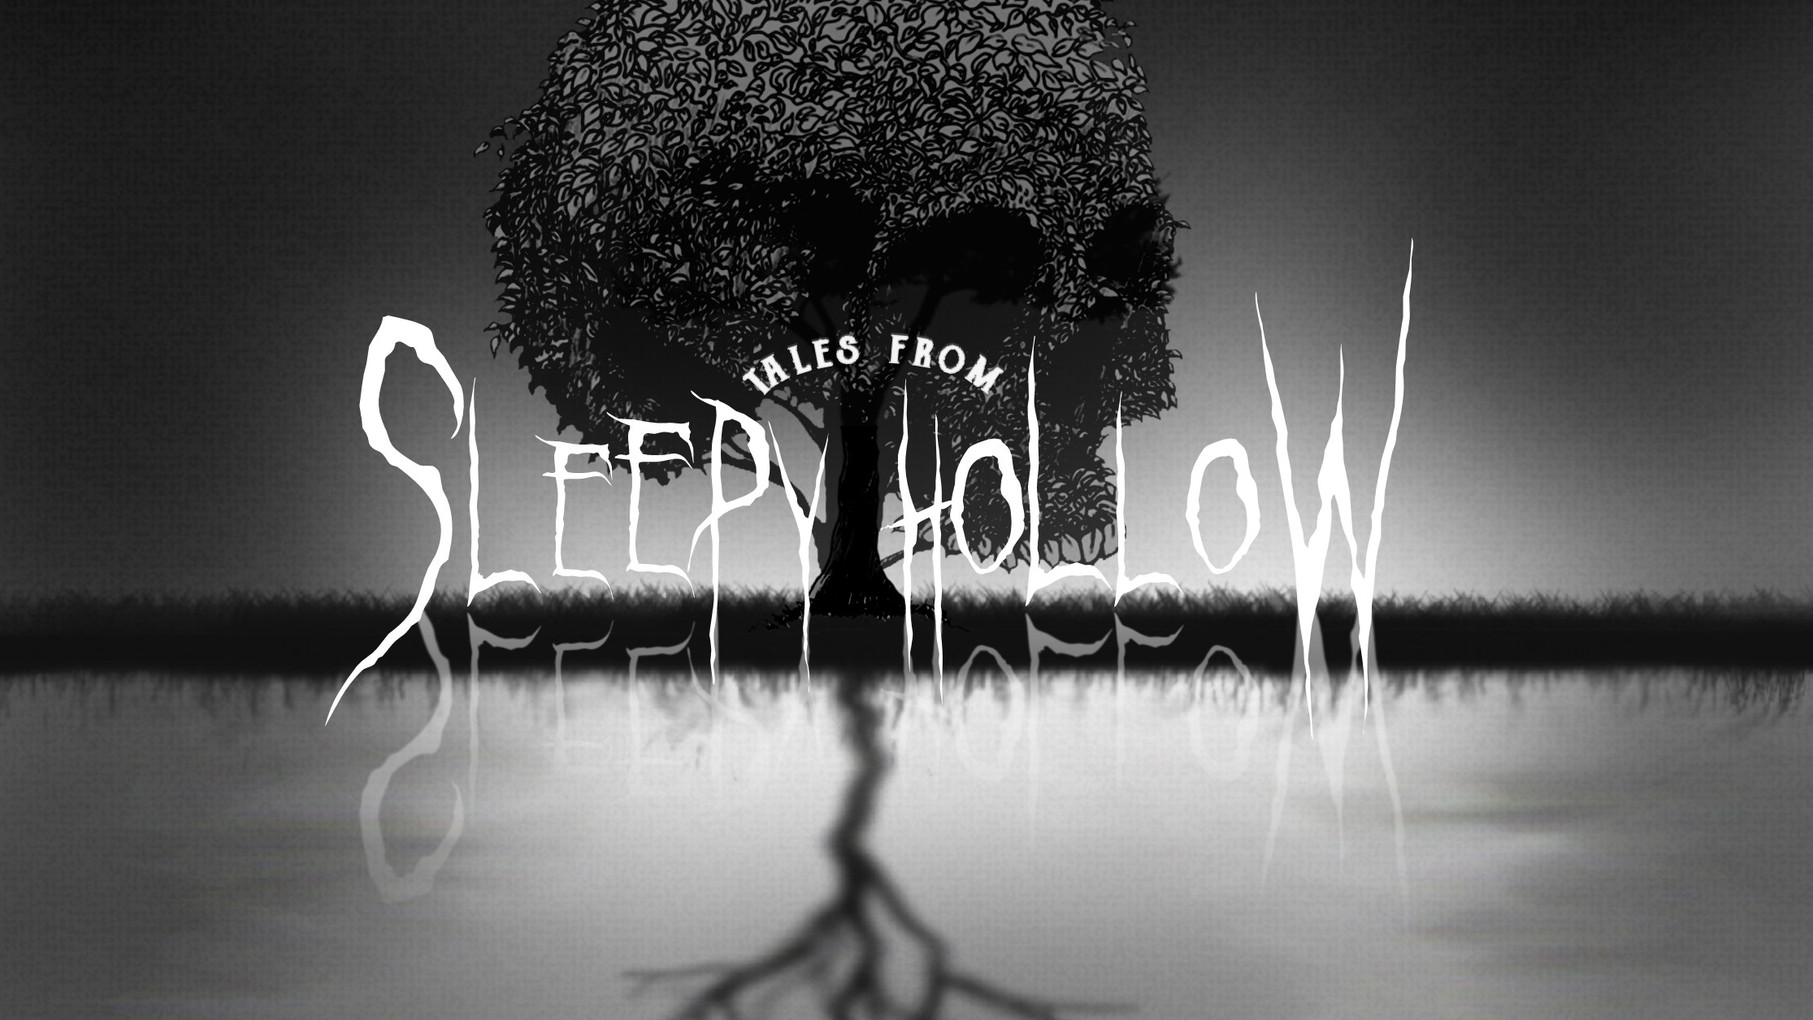 Tales from Sleepy Hollow